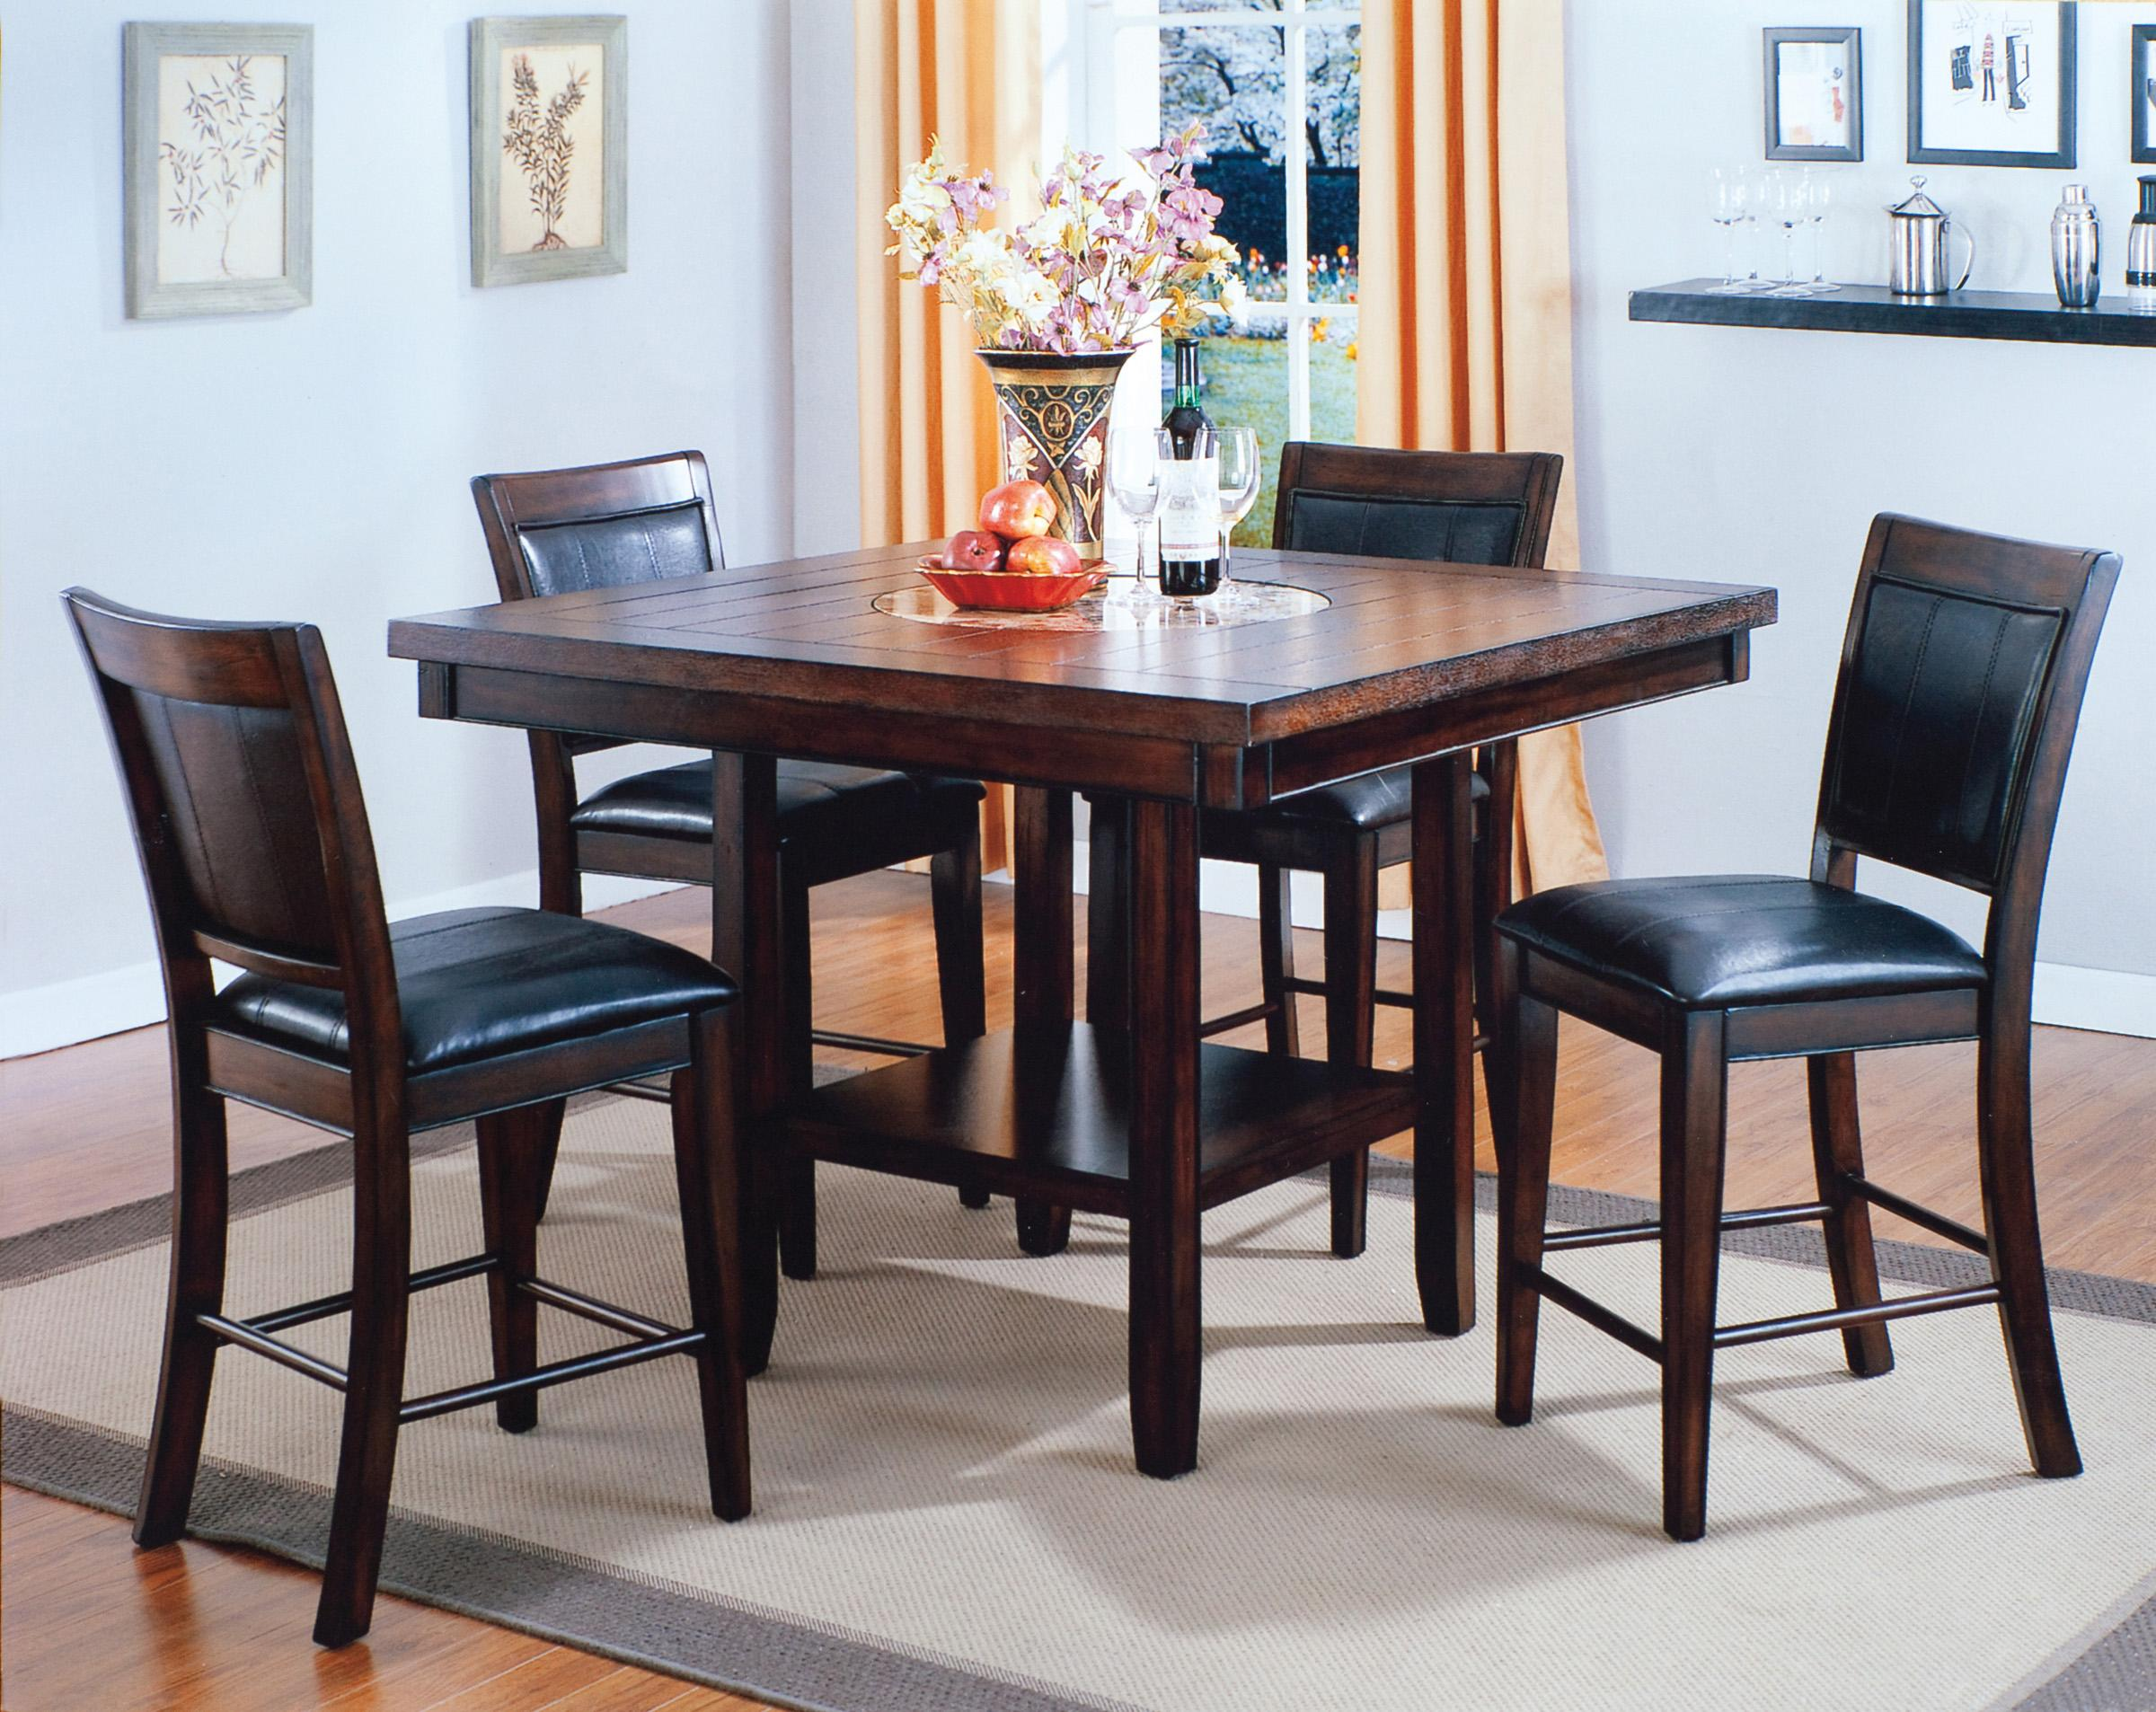 Fulton Counter Height Table and Chair Set by Crown Mark at Northeast Factory Direct